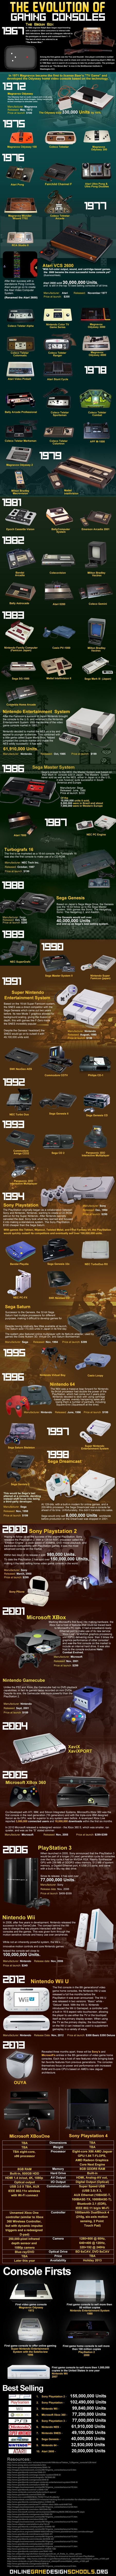 The Evolution of Gaming Consoles (1969 - 2013) game consoles small